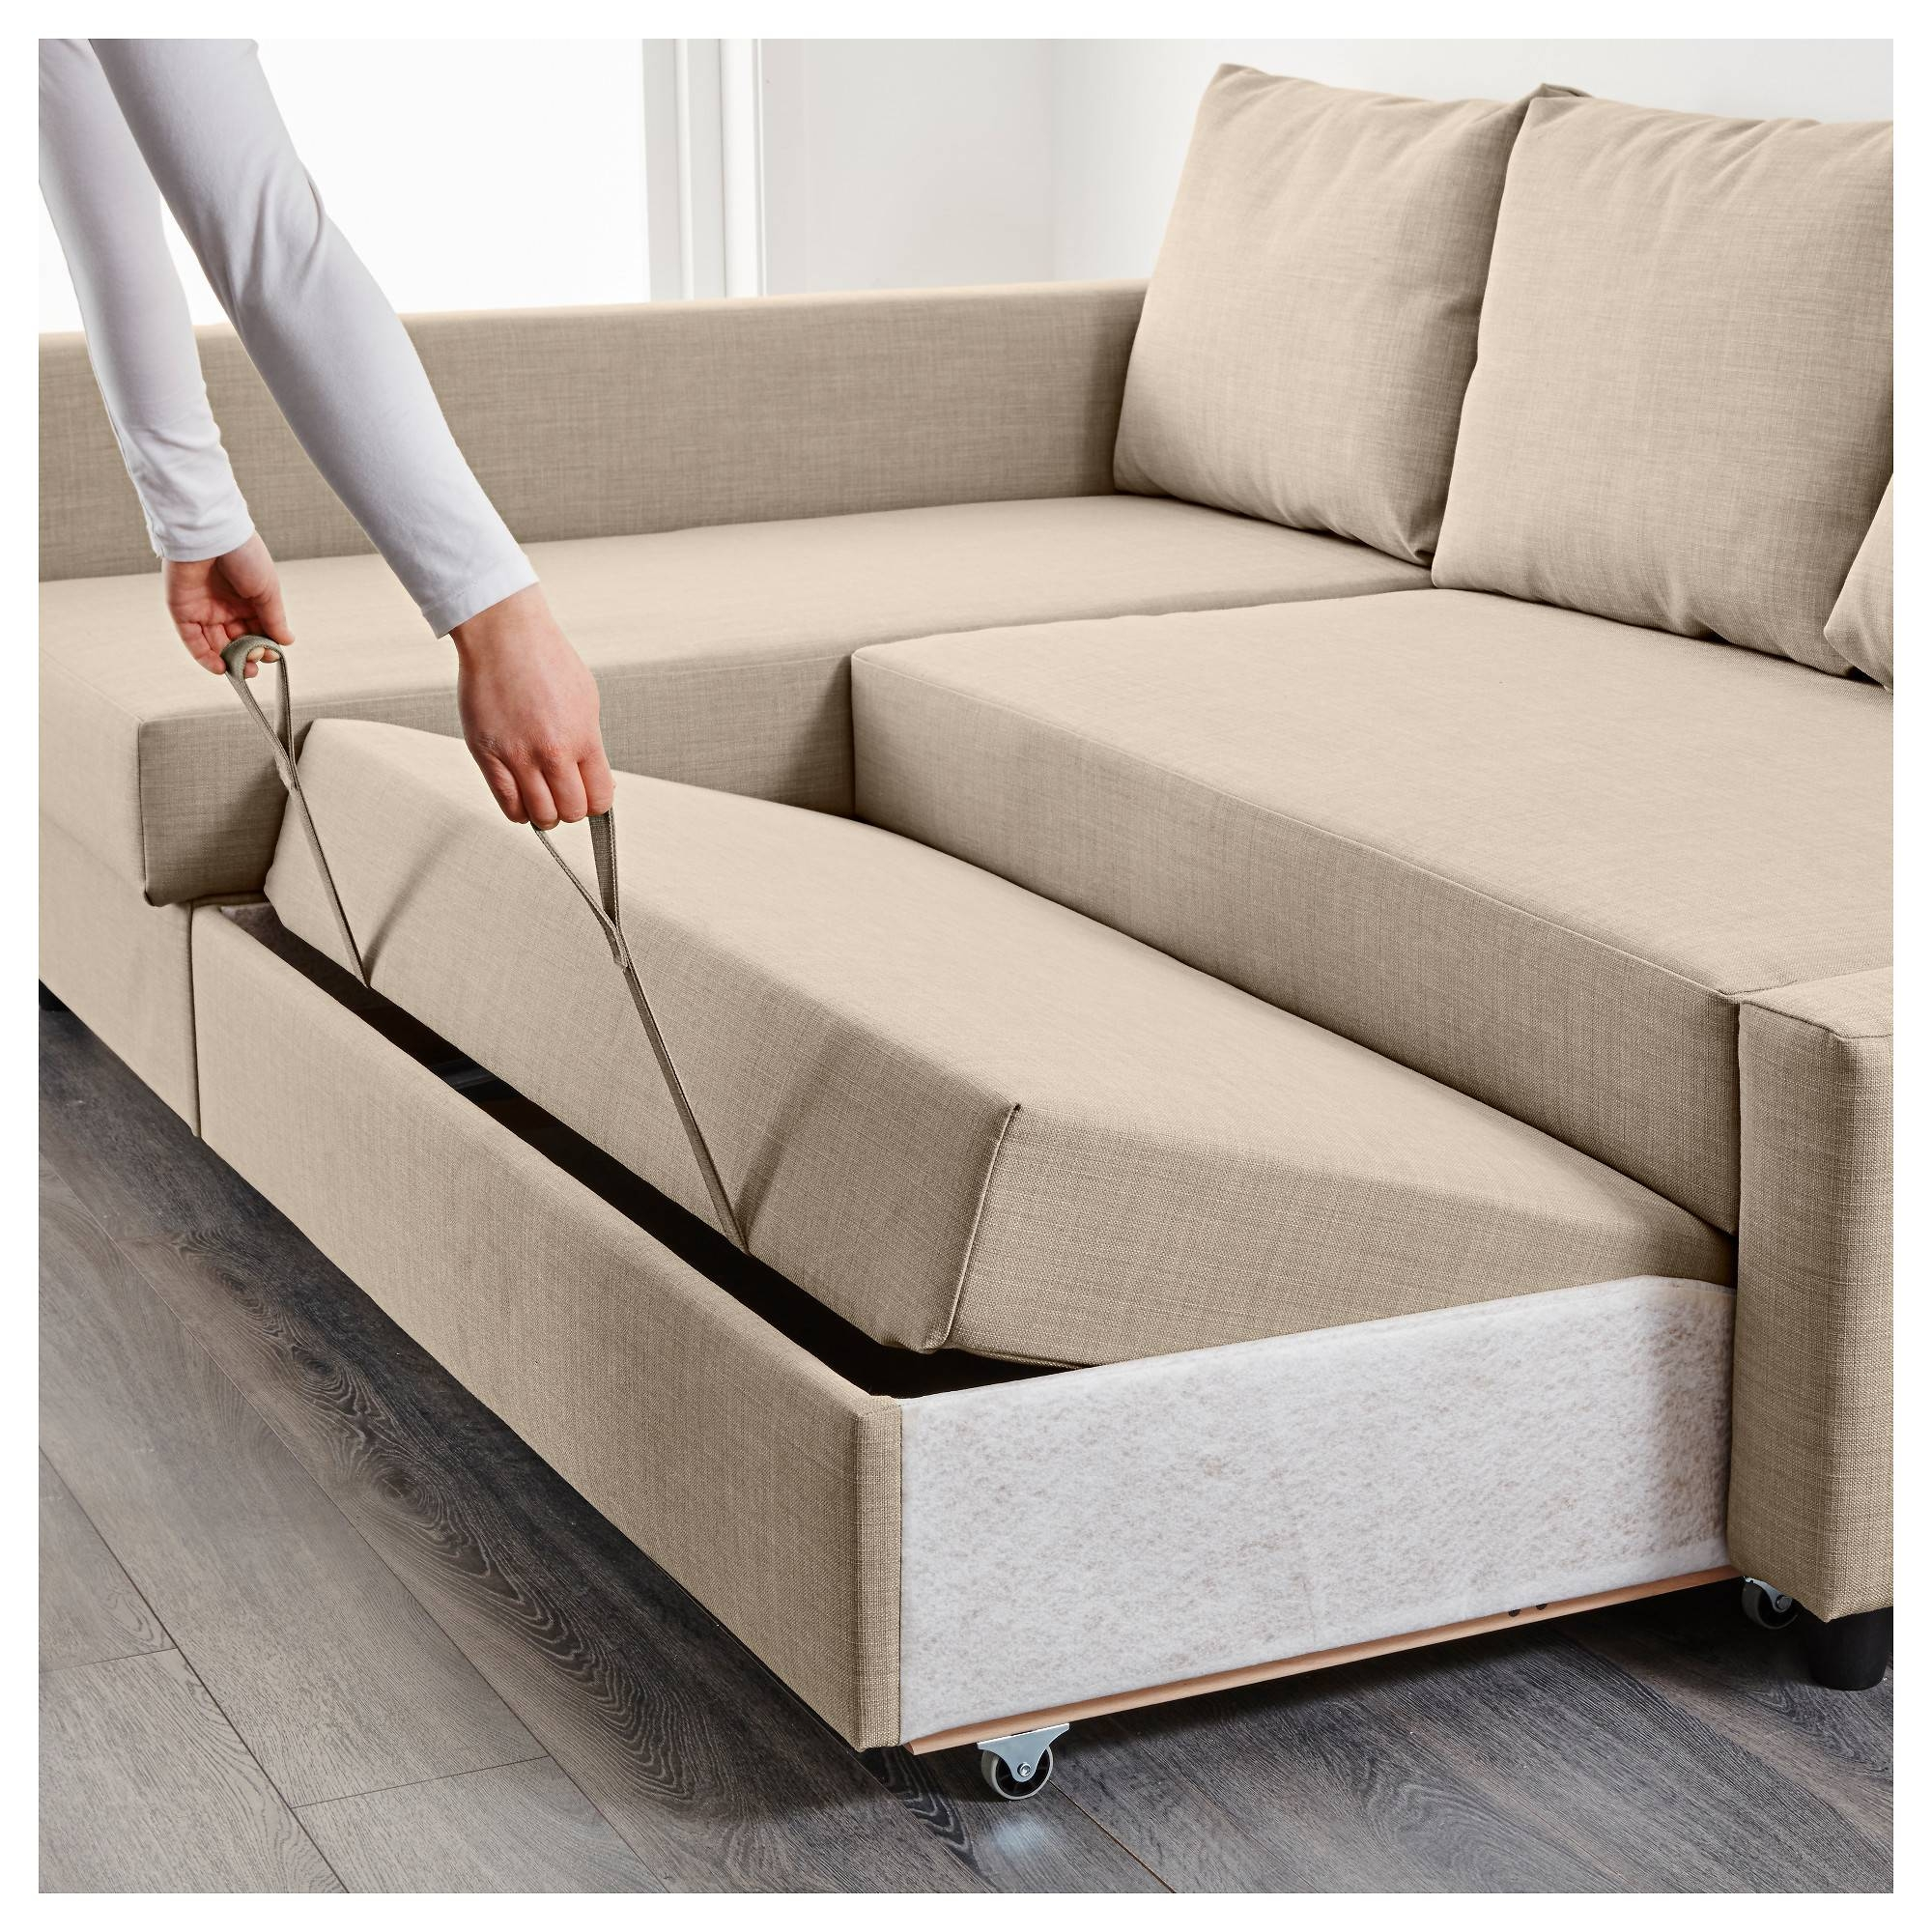 Friheten Corner Sofa-Bed With Storage Skiftebo Beige - Ikea pertaining to Ikea Sofa Storage (Image 2 of 25)